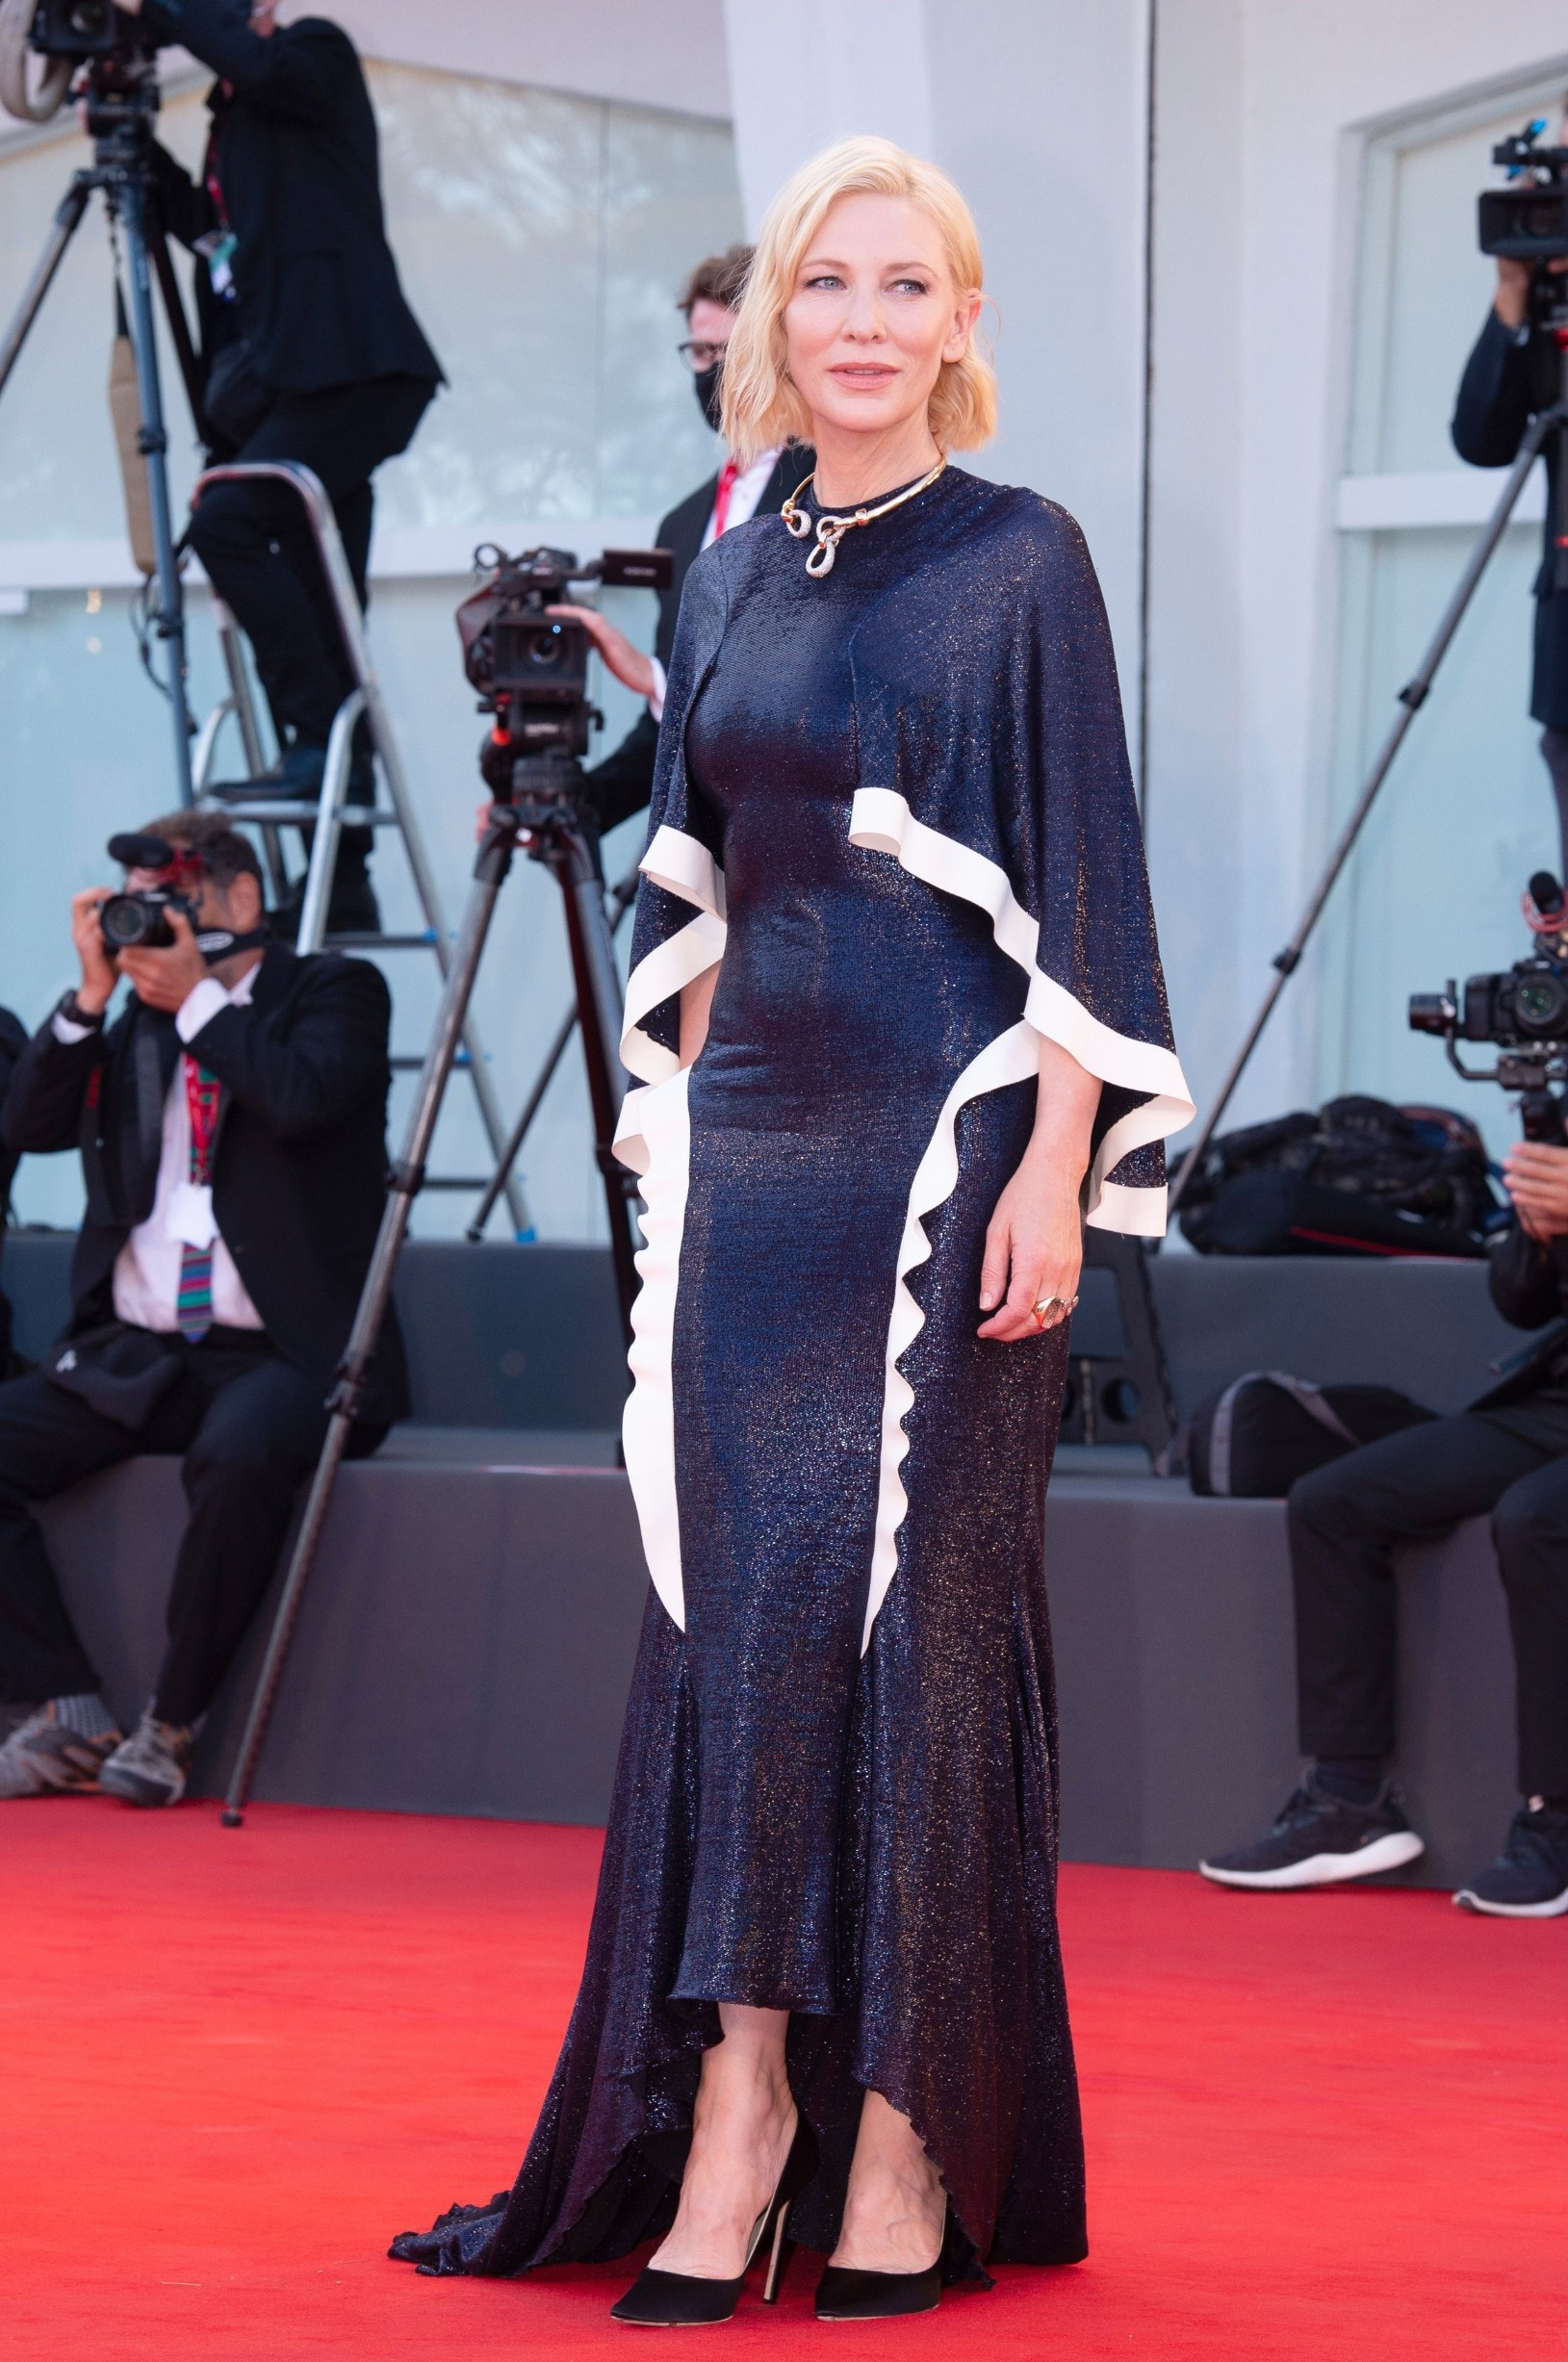 Cate Blanchett 'The Ties' premiere and Golden Lion for Lifetime Achievement Ceremony, 77th Venice International Film Festival, Italy - 02 Sep 2020,Image: 555903387, License: Rights-managed, Restrictions: , Model Release: no, Credit line: Ron Crusow/imageSPACE / Shutterstock Editorial / Profimedia